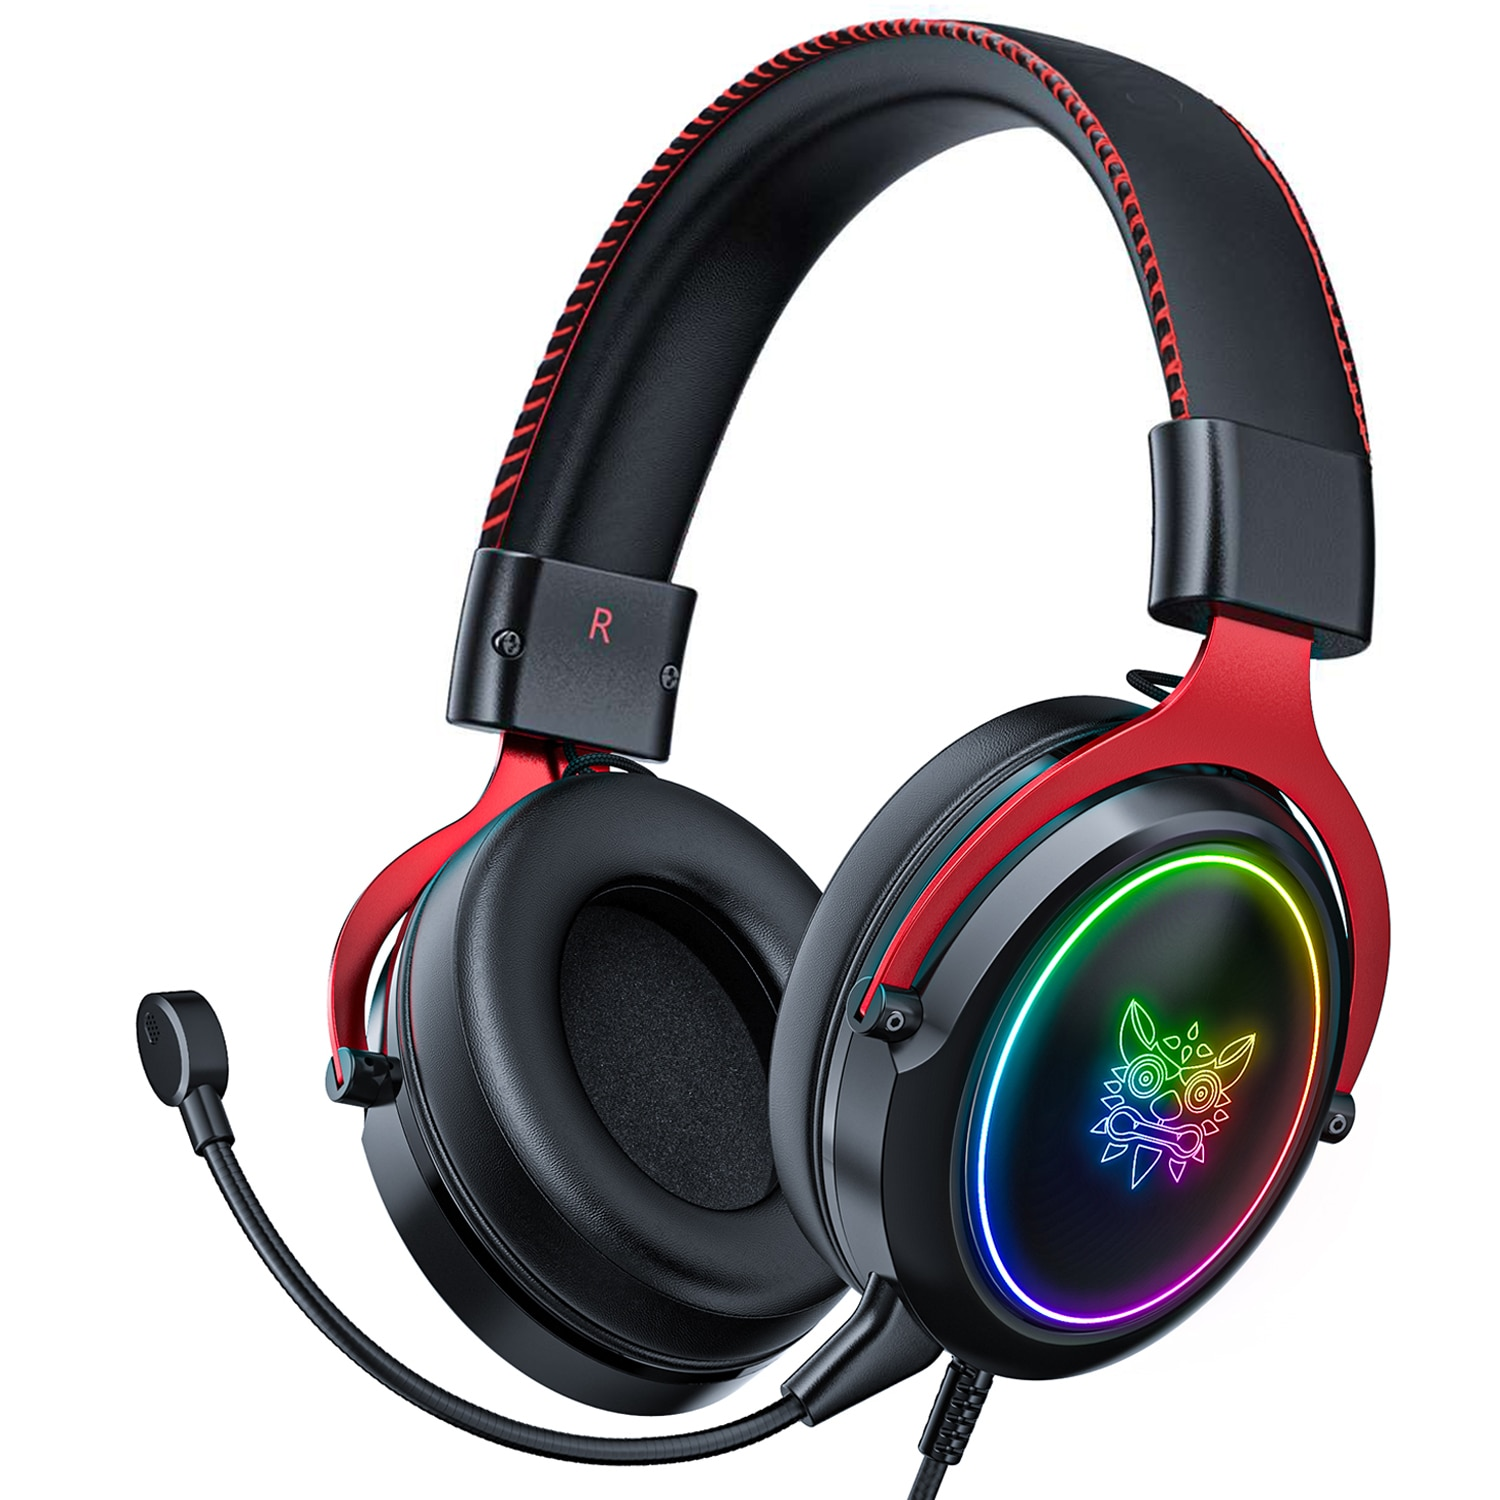 Wired Gaming Headset  PS4 Headphones Bass Stereo Game RGB Light Earphone With Removable Microphone For PC Phone XBOX Laptop недорого